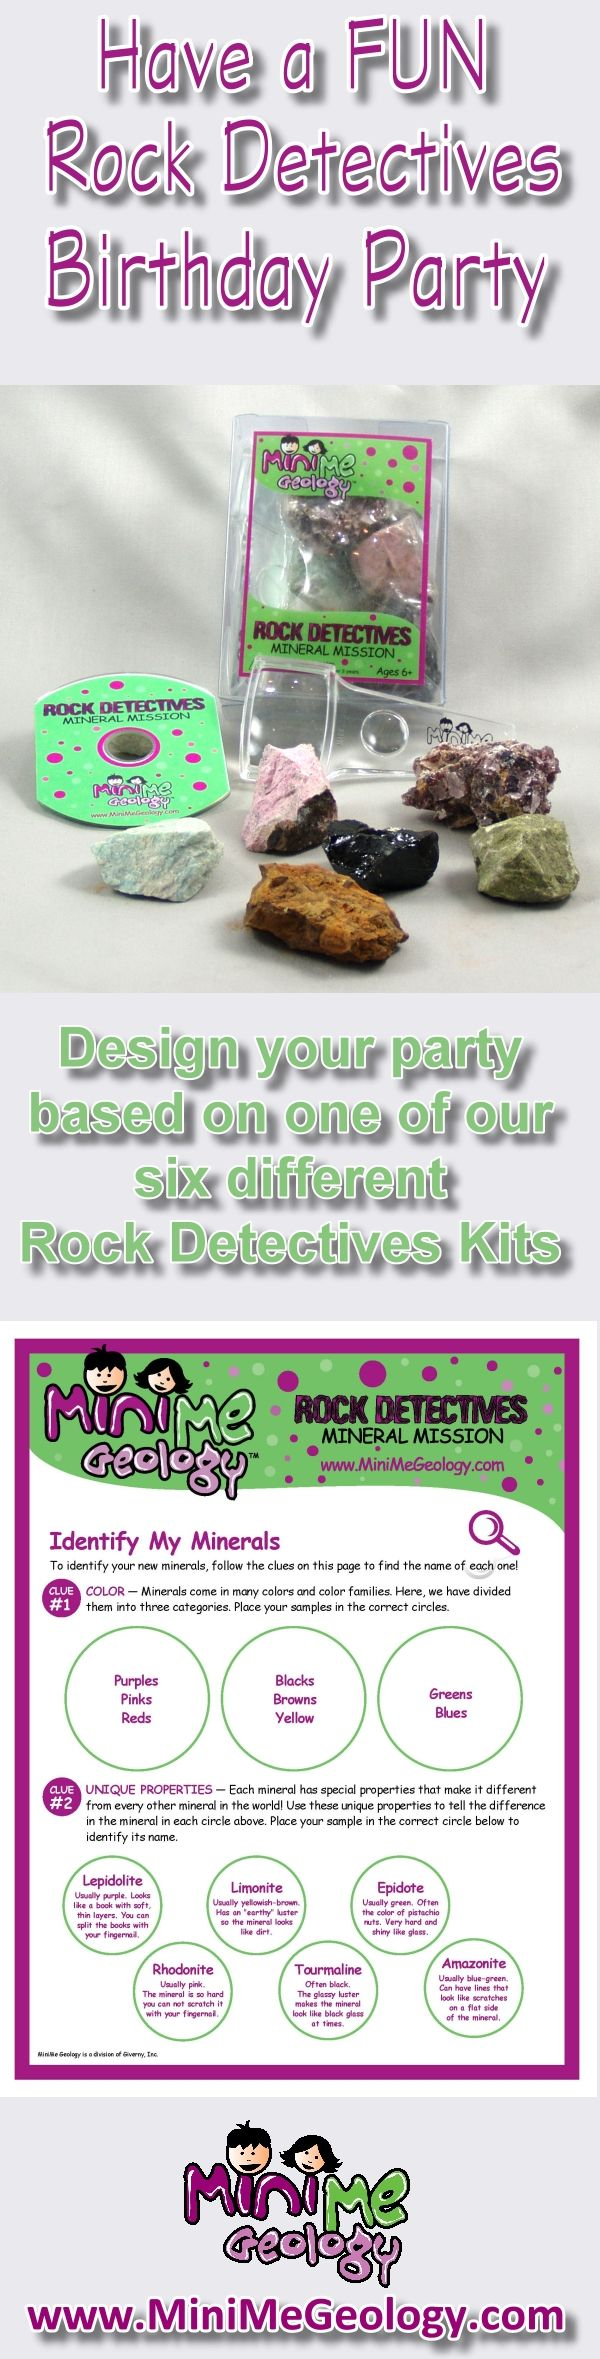 Have a fun Rock Detectives Birthday Party this year. Mini Me Geology's birthday parties are based on the Rock Detectives line of kits and are sure to please your party guests. Ages 6-12 recommended.